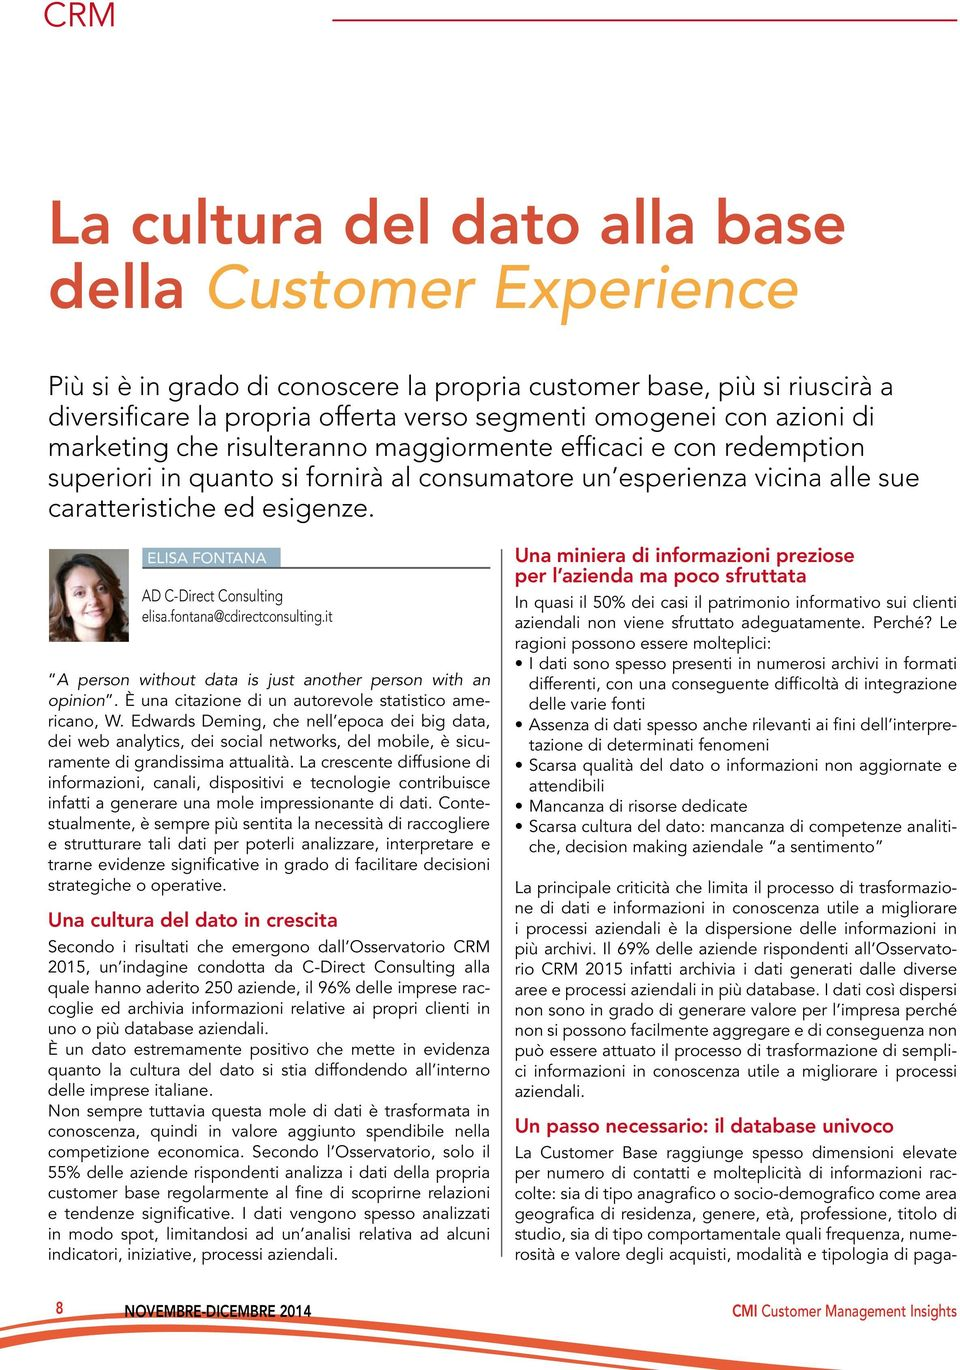 ELISA FONTANA AD C-Direct Consulting elisa.fontana@cdirectconsulting.it A person without data is just another person with an opinion. È una citazione di un autorevole statistico americano, W.